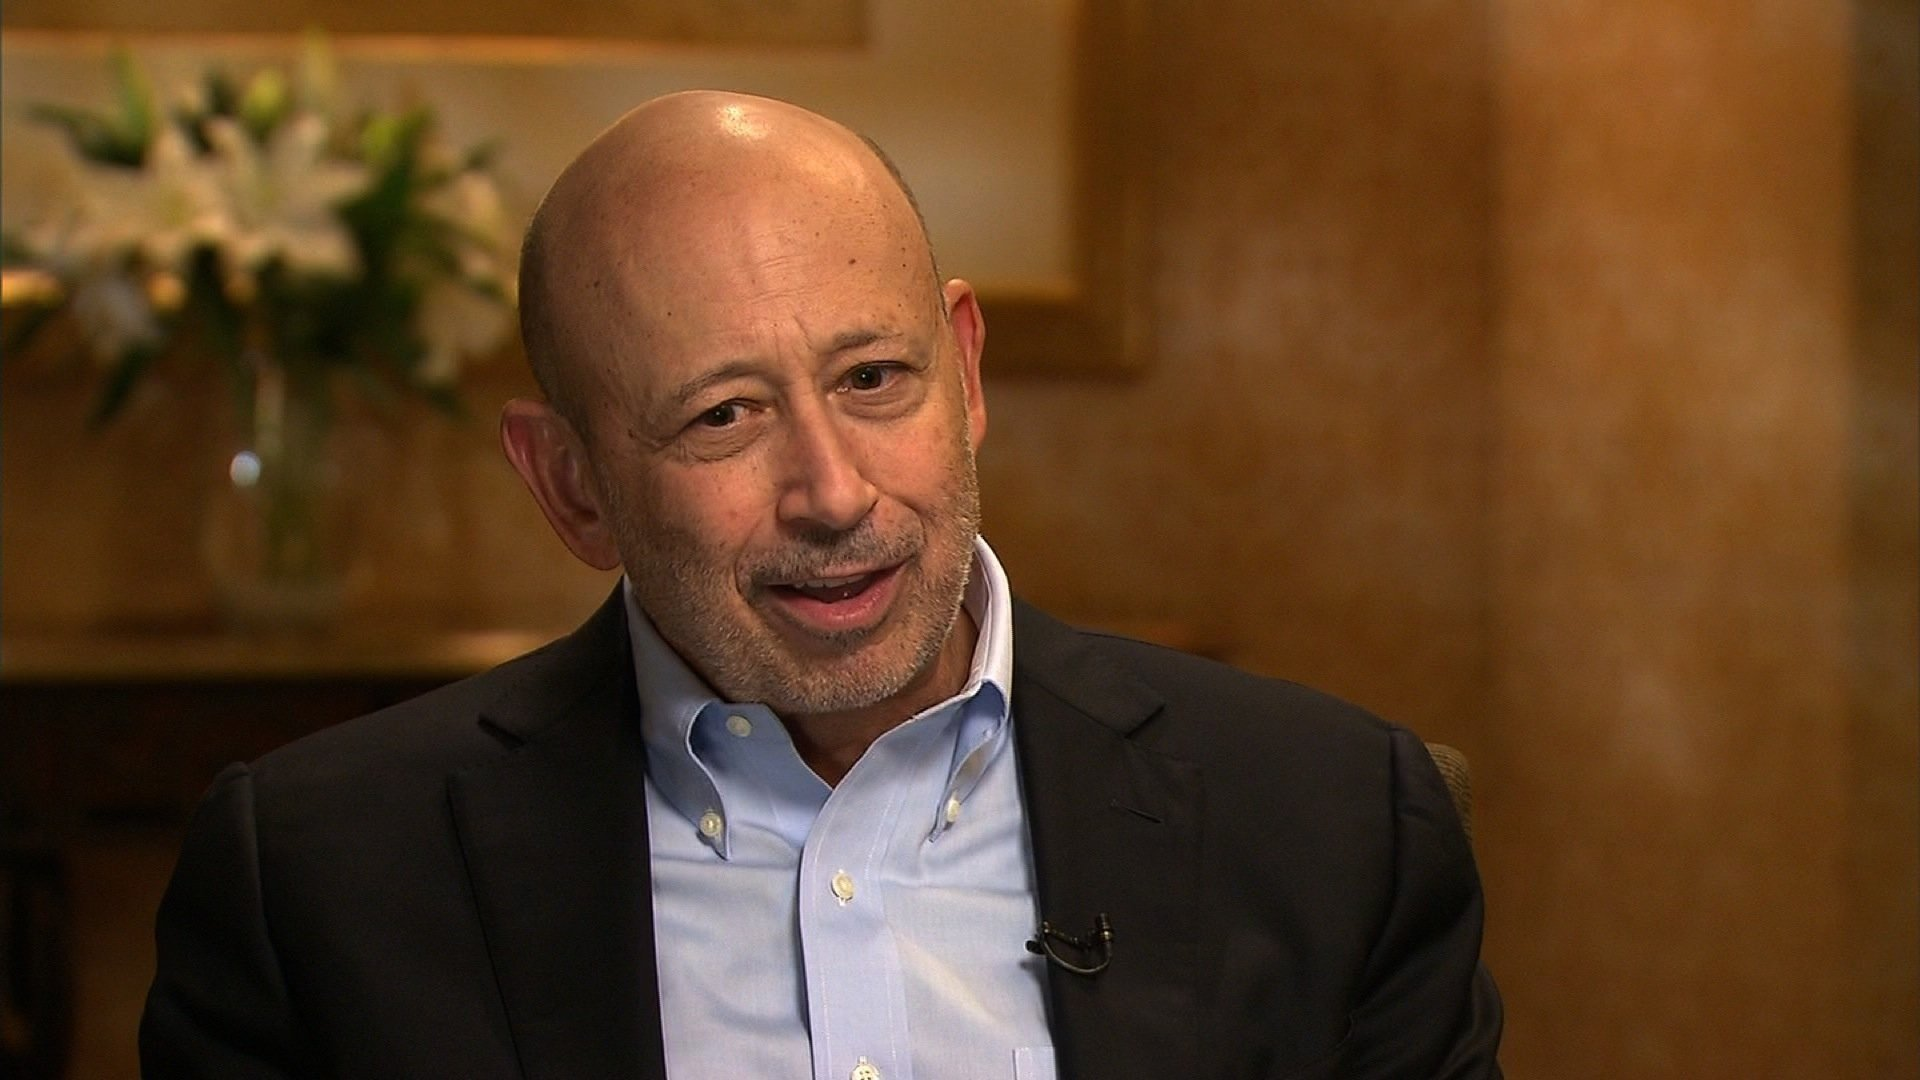 Blankfein Prepares to Exit Goldman, WSJ Reports